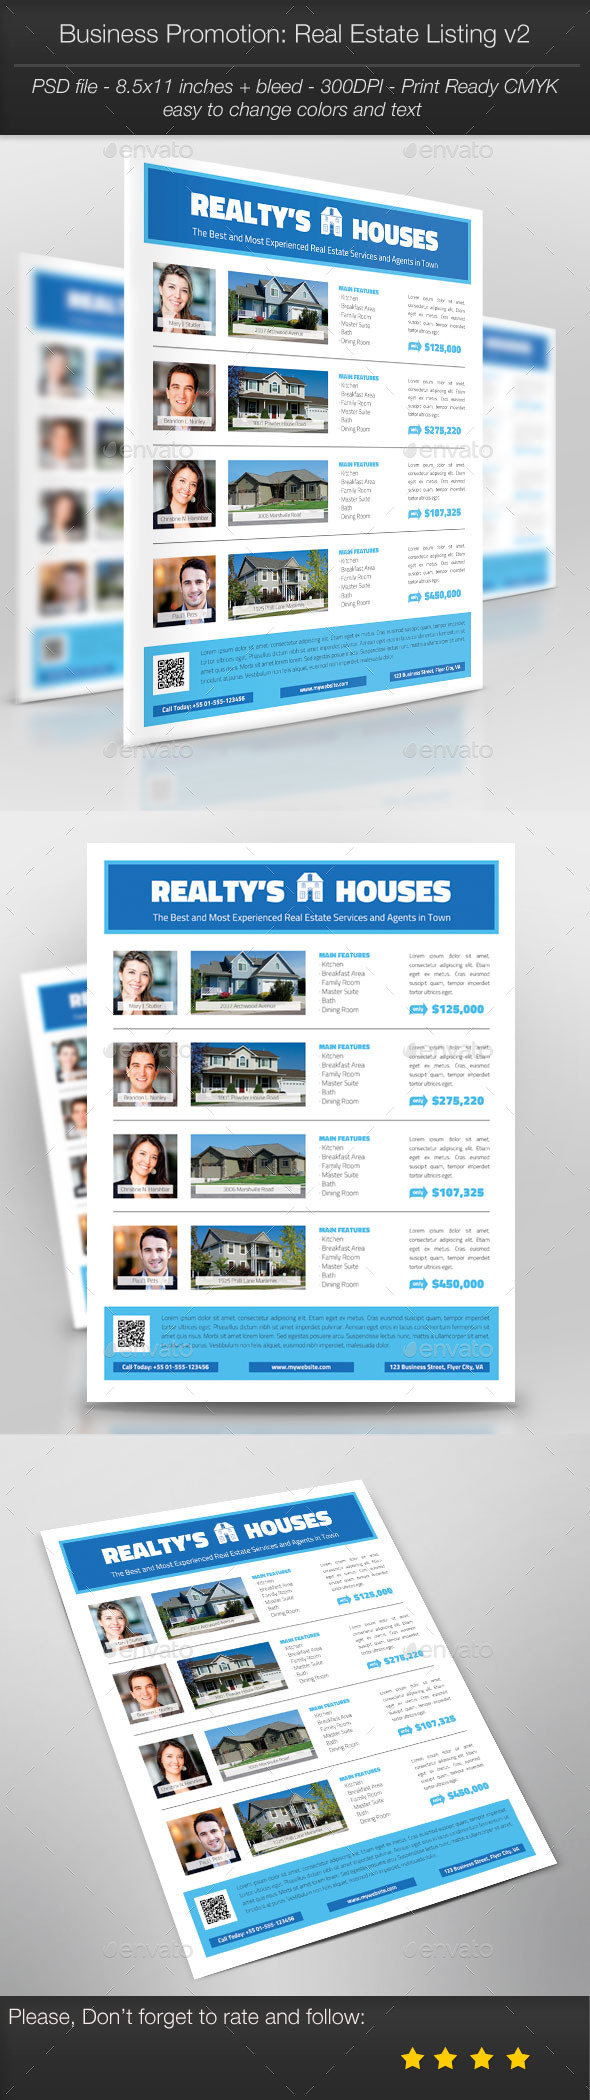 GraphicRiver Business Promotion Real Estate Listing v2 10741385